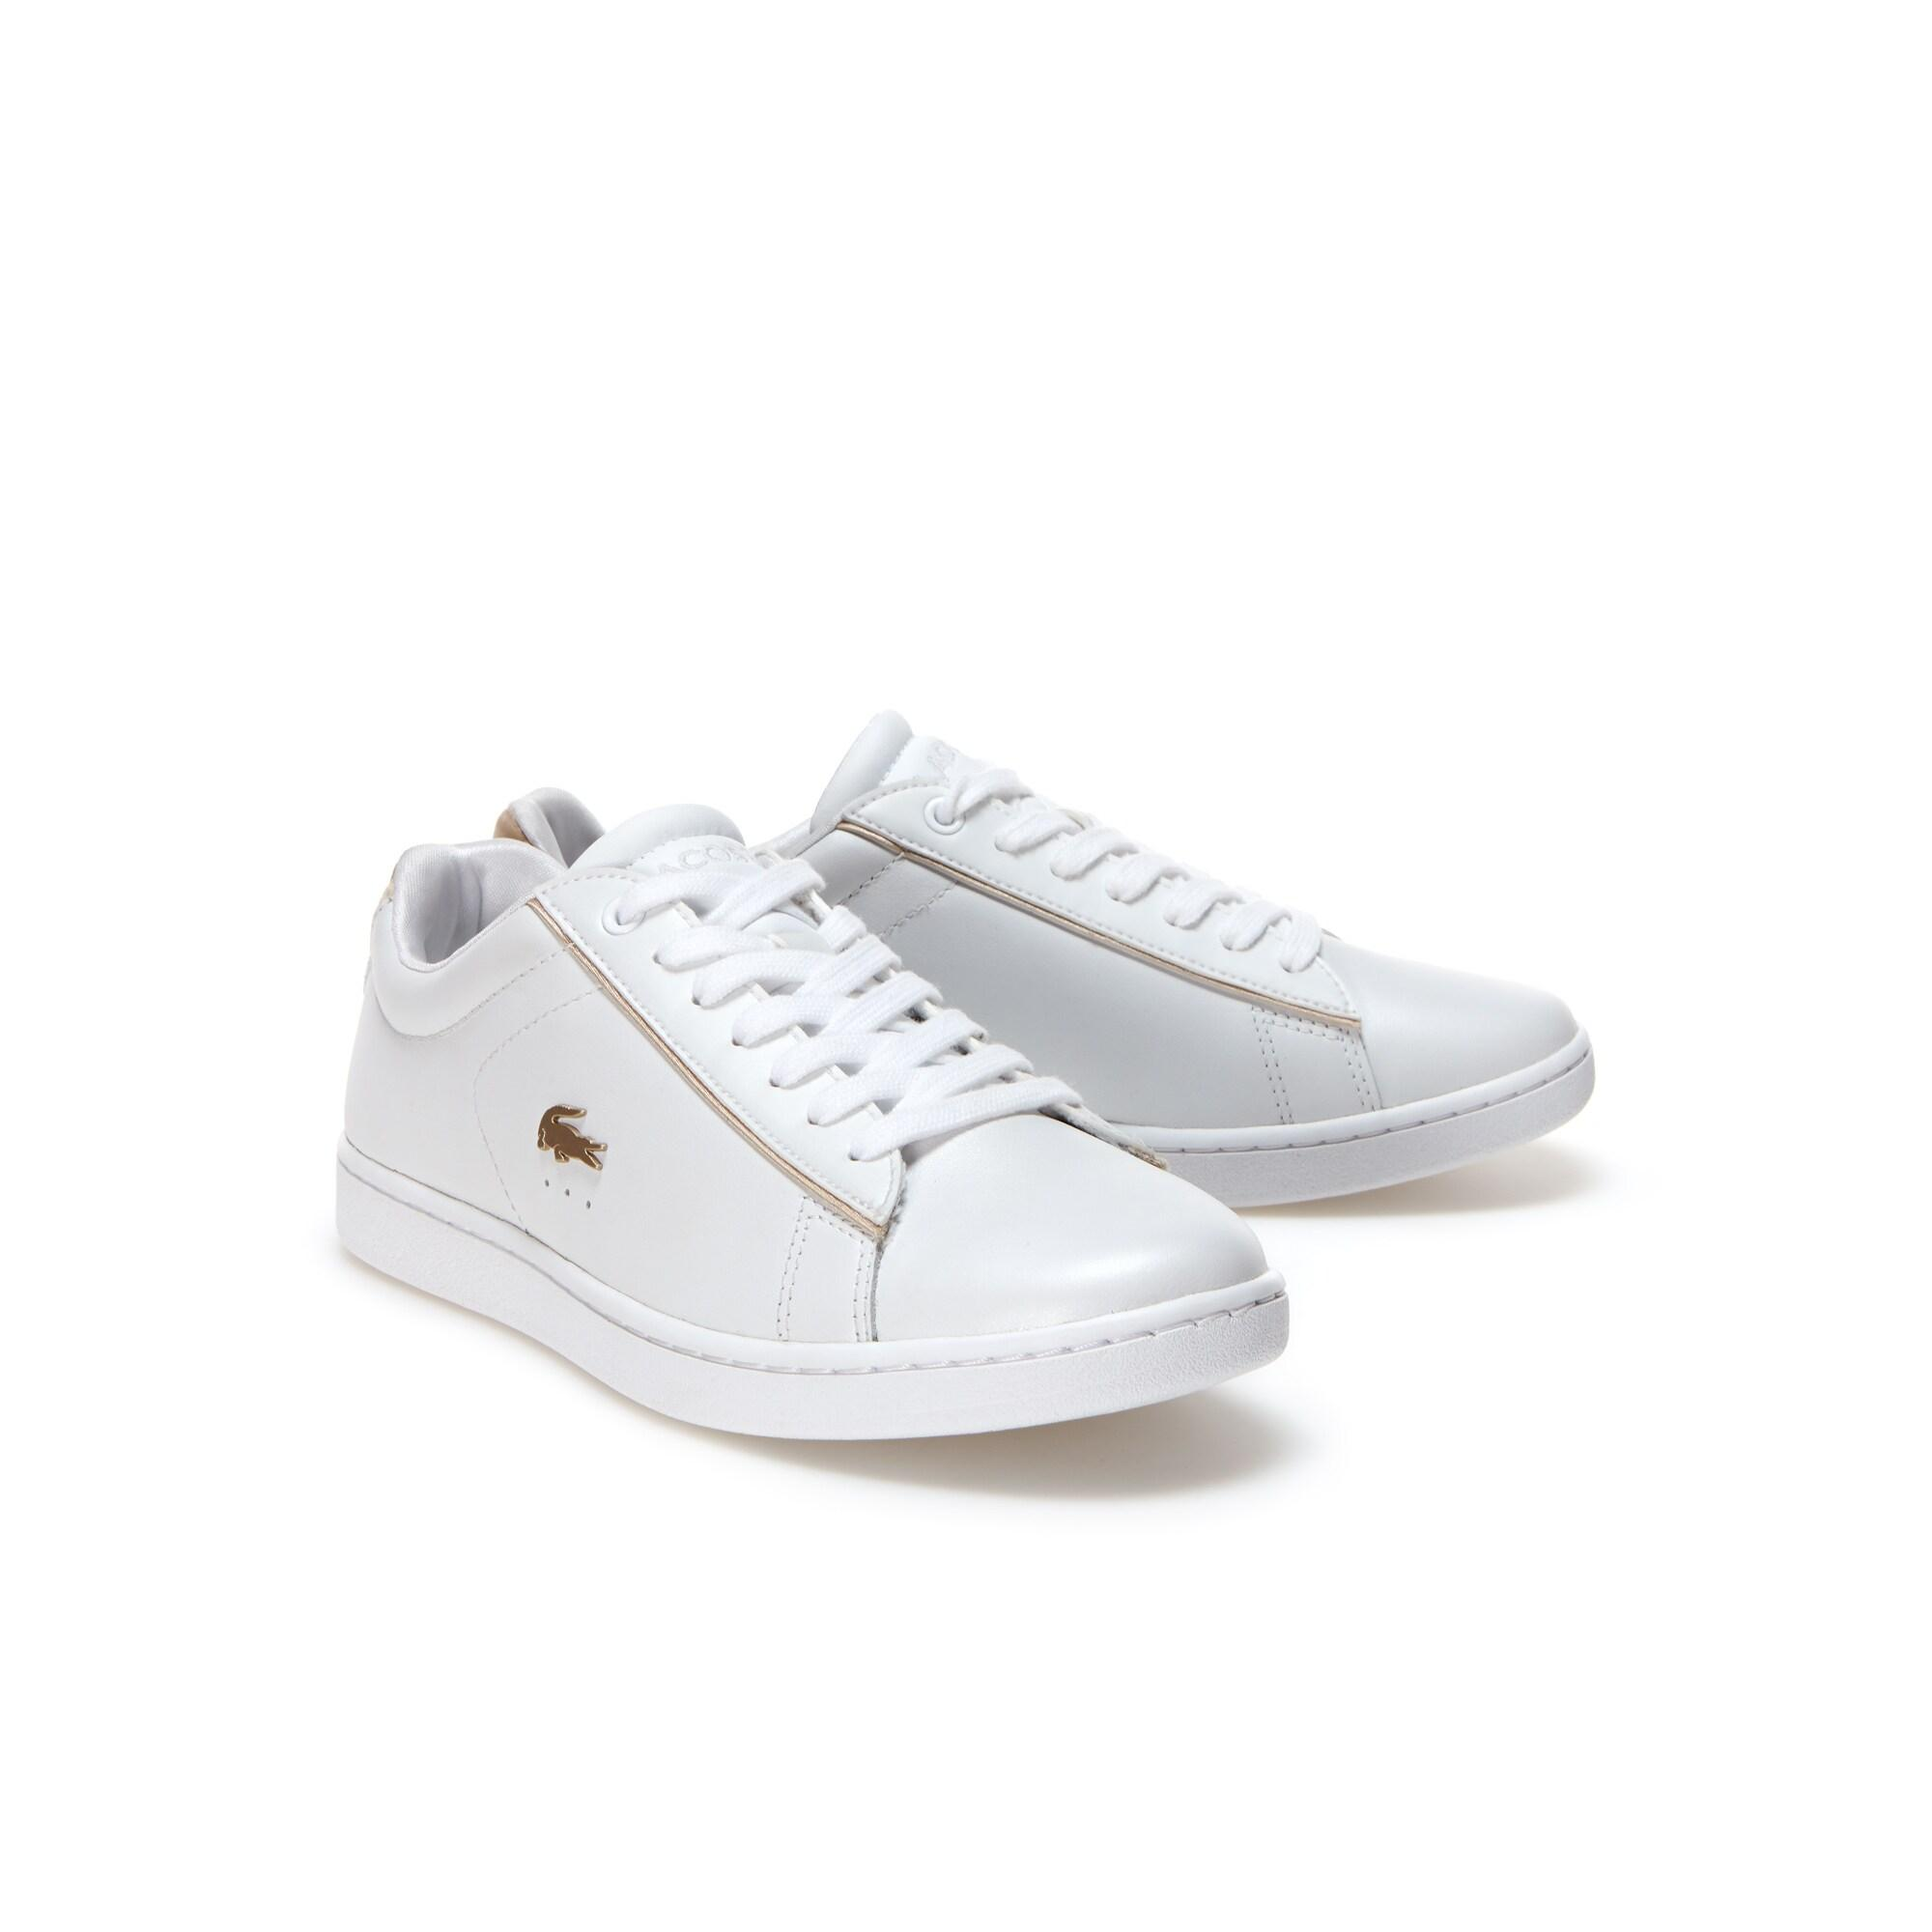 Lacoste Women's Carnaby Evo 118 6 Spw Leather Sneakers